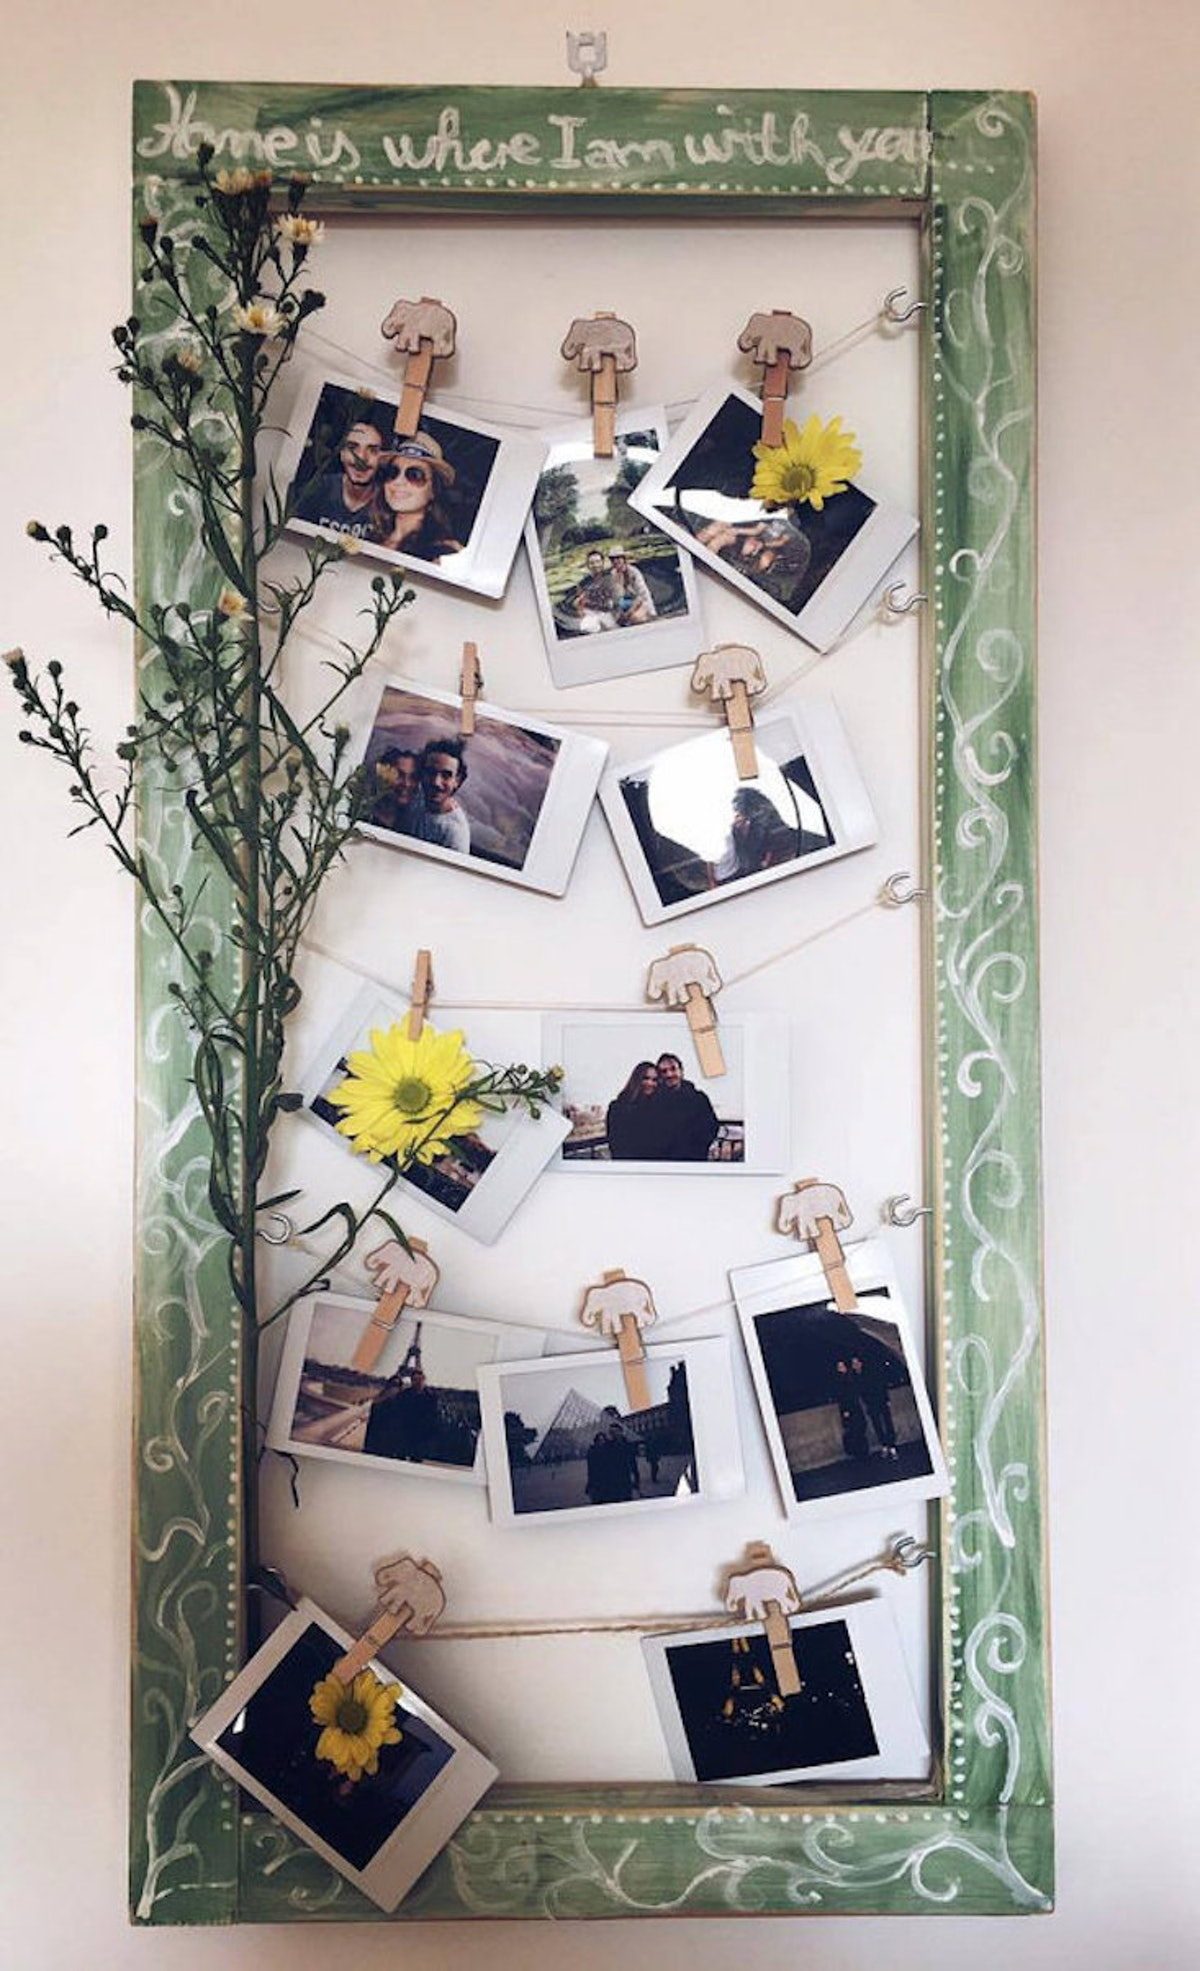 Home Is Where I Am With You - Photo Frame